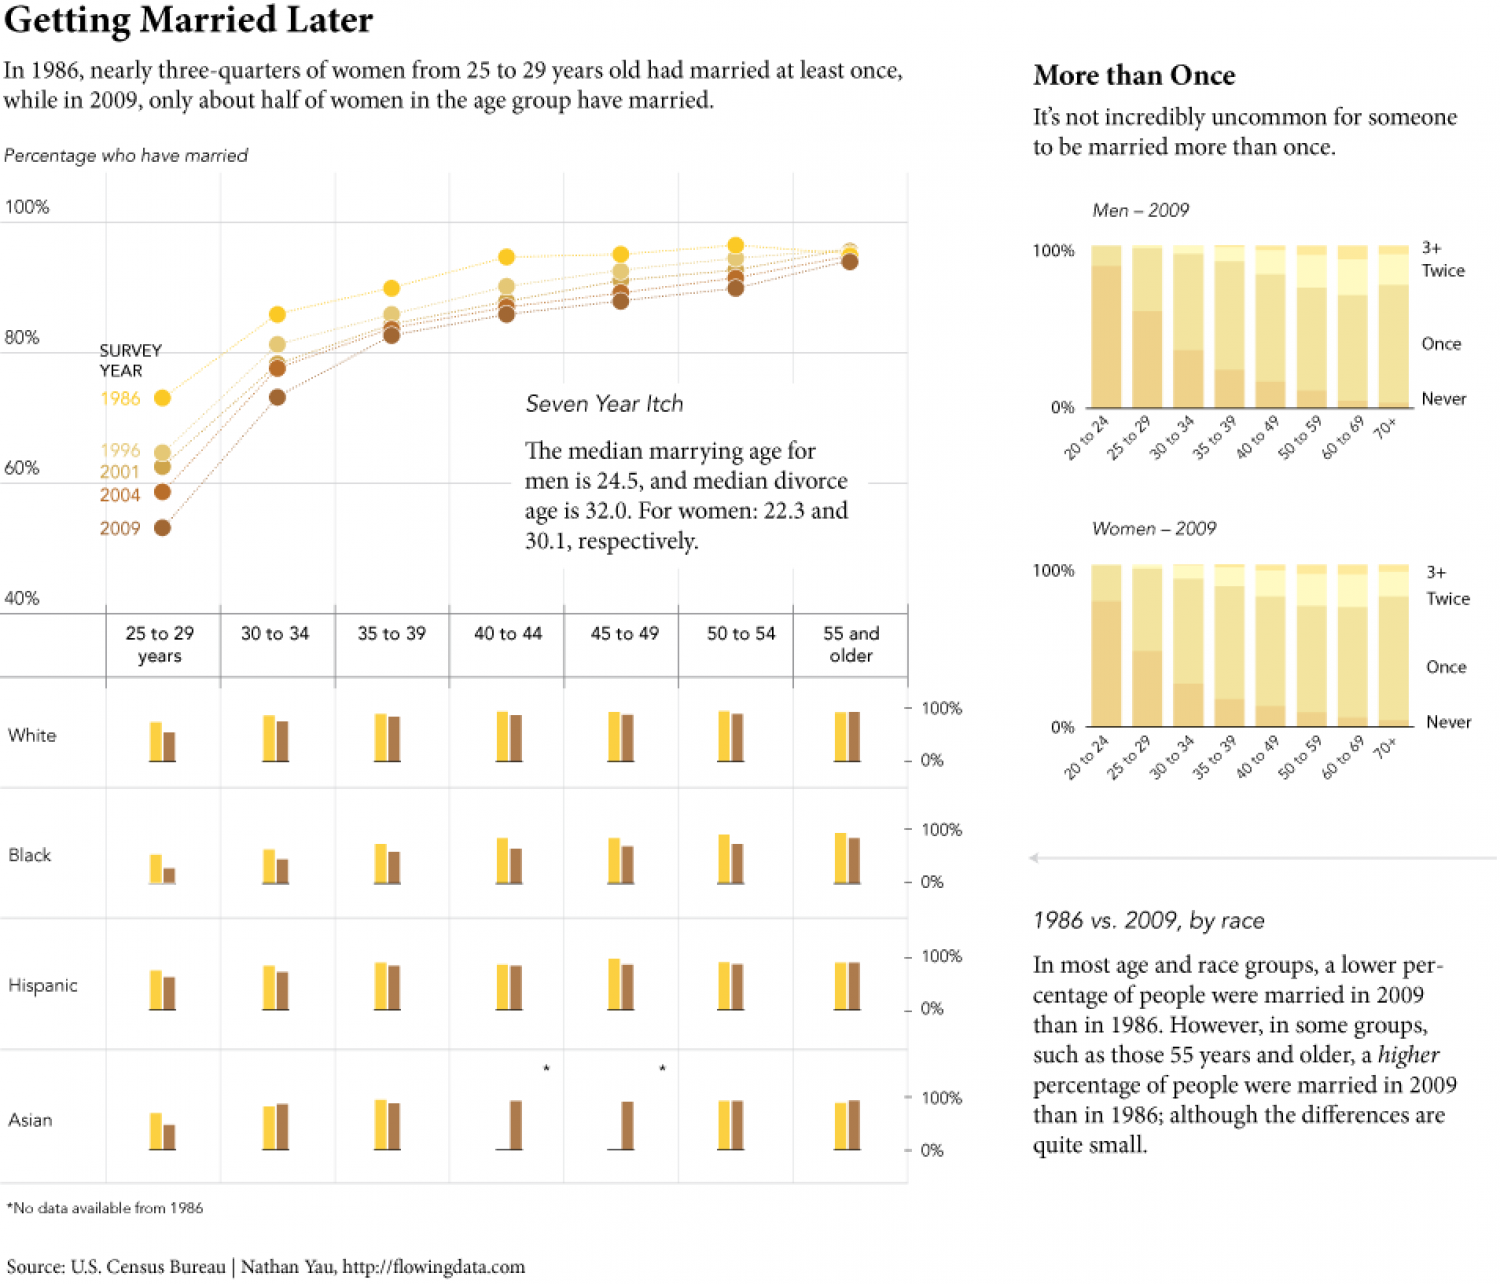 Getting Married Later Infographic